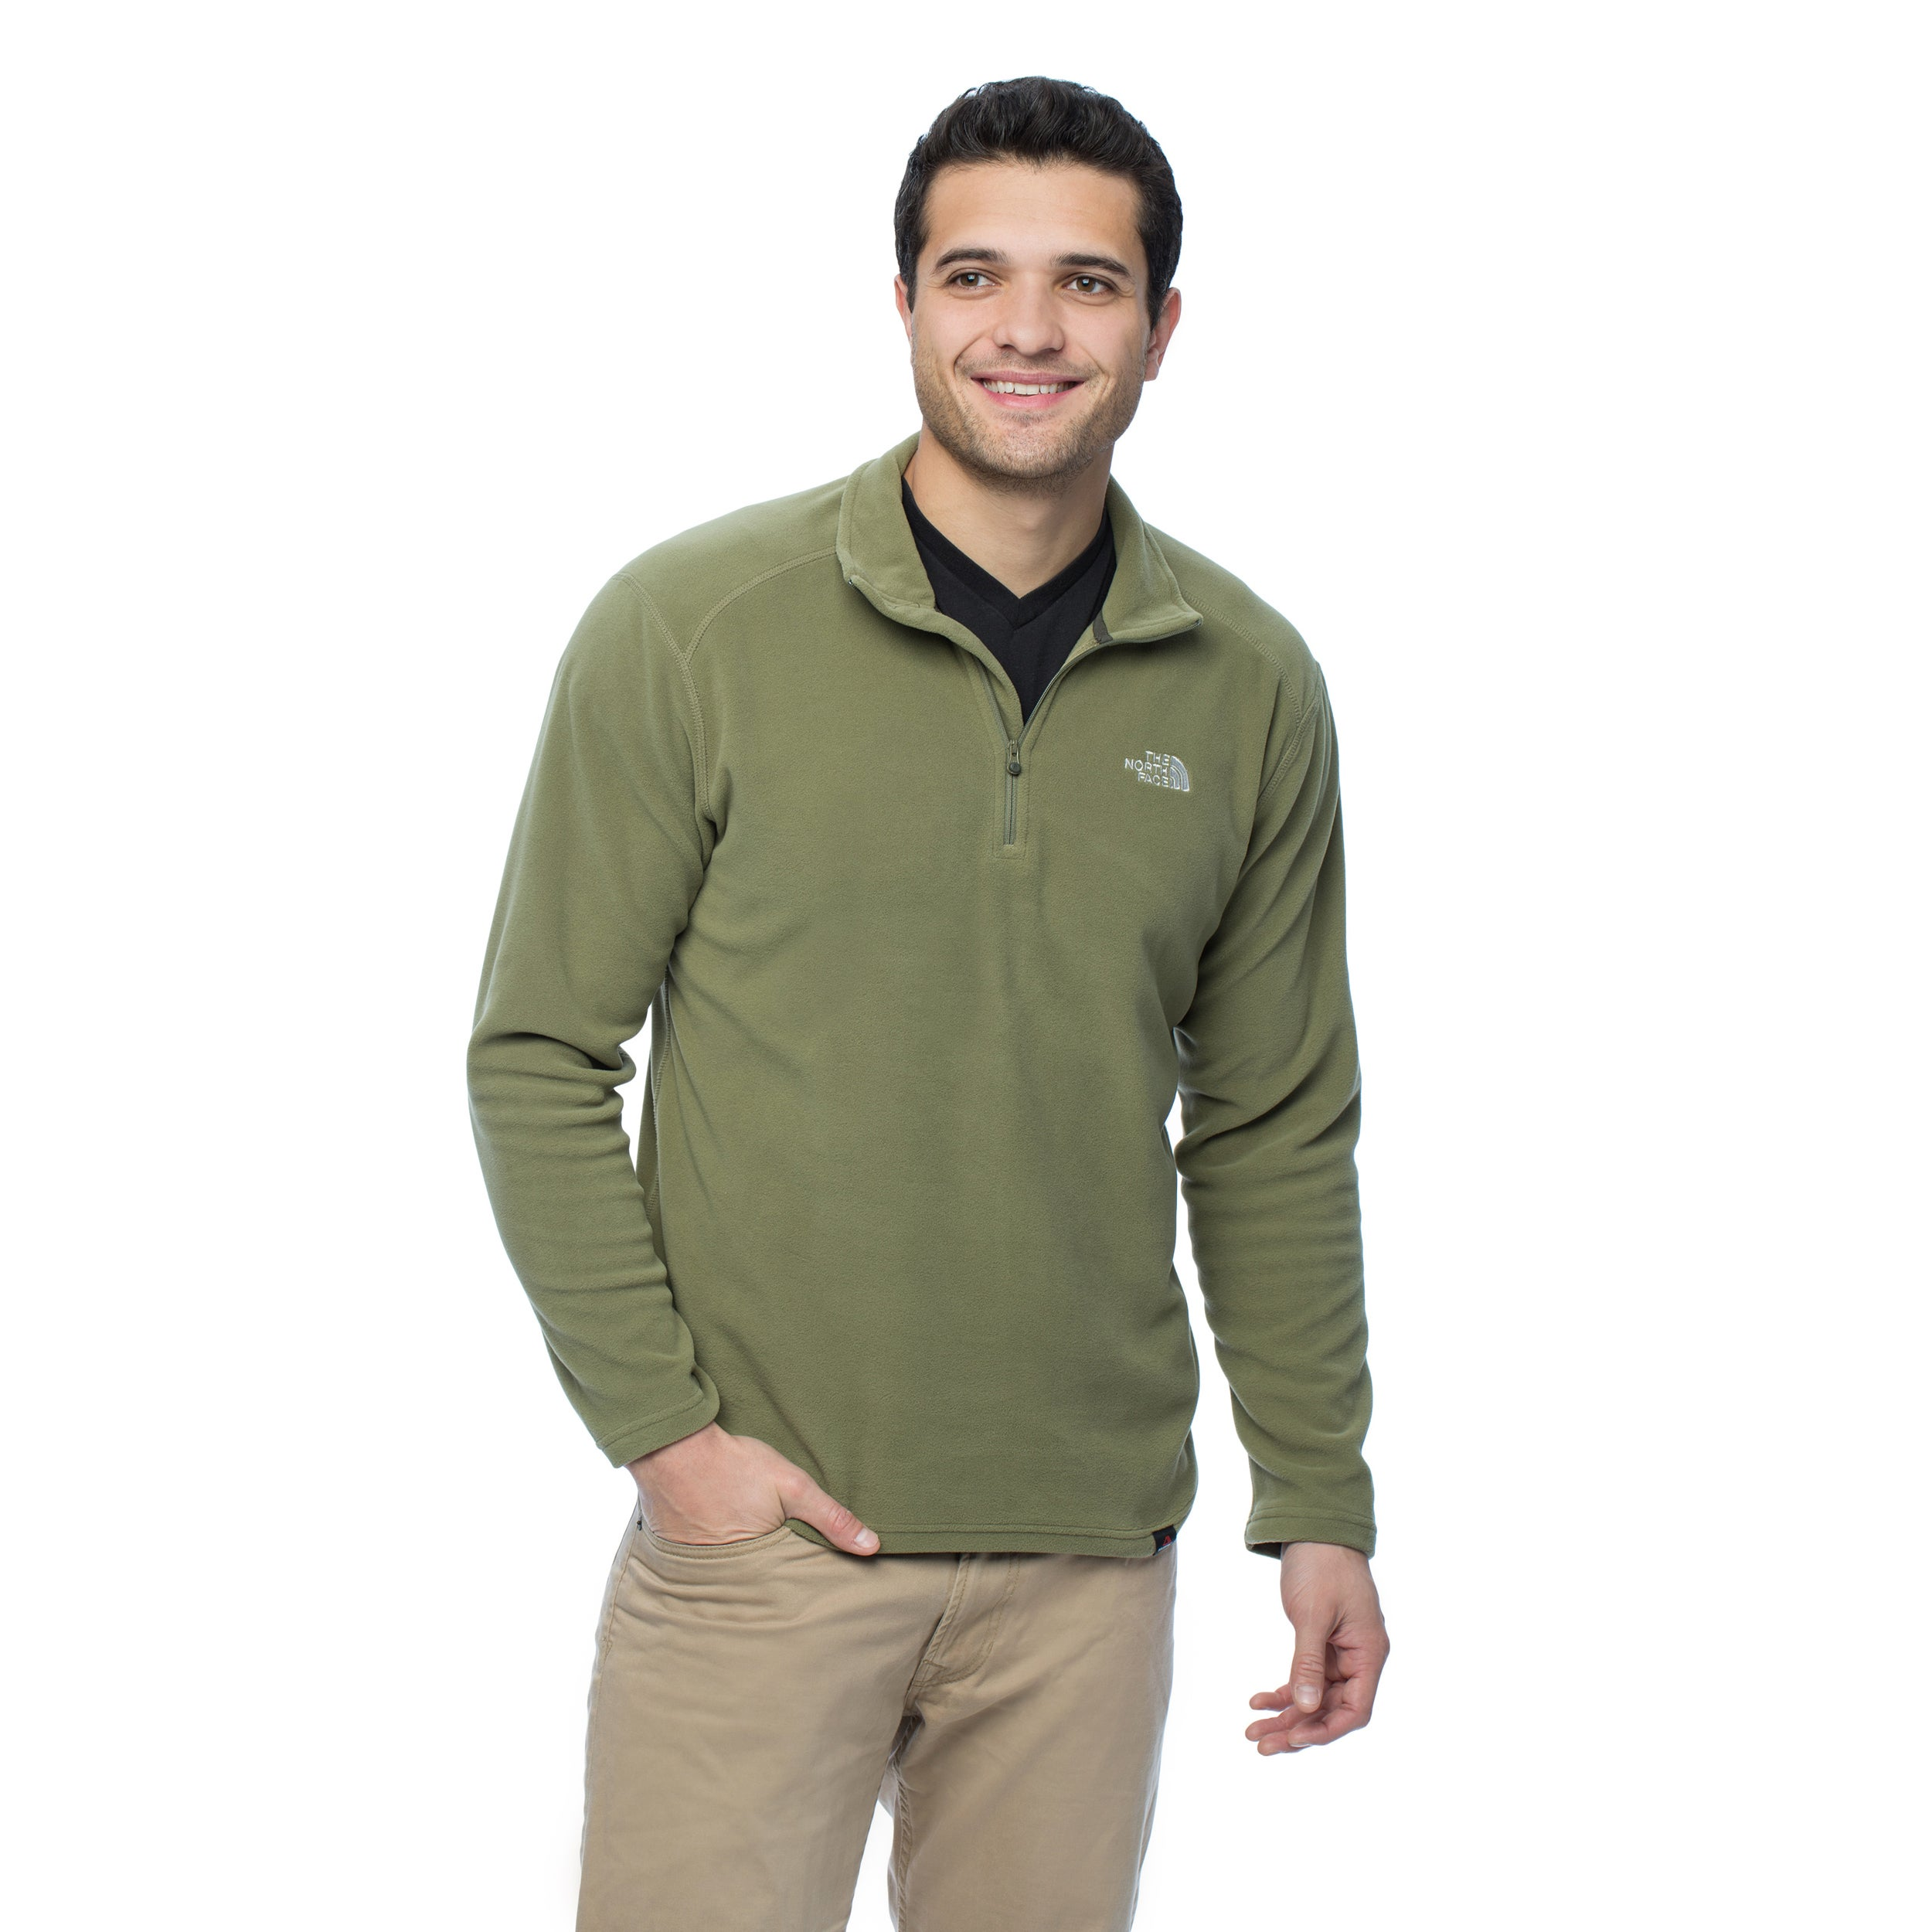 d007f7aeb377 Shop The North Face Men s Burnt Olive Green 100 Glacier 1 4 Zip - Free  Shipping On Orders Over  45 - Overstock - 10787077